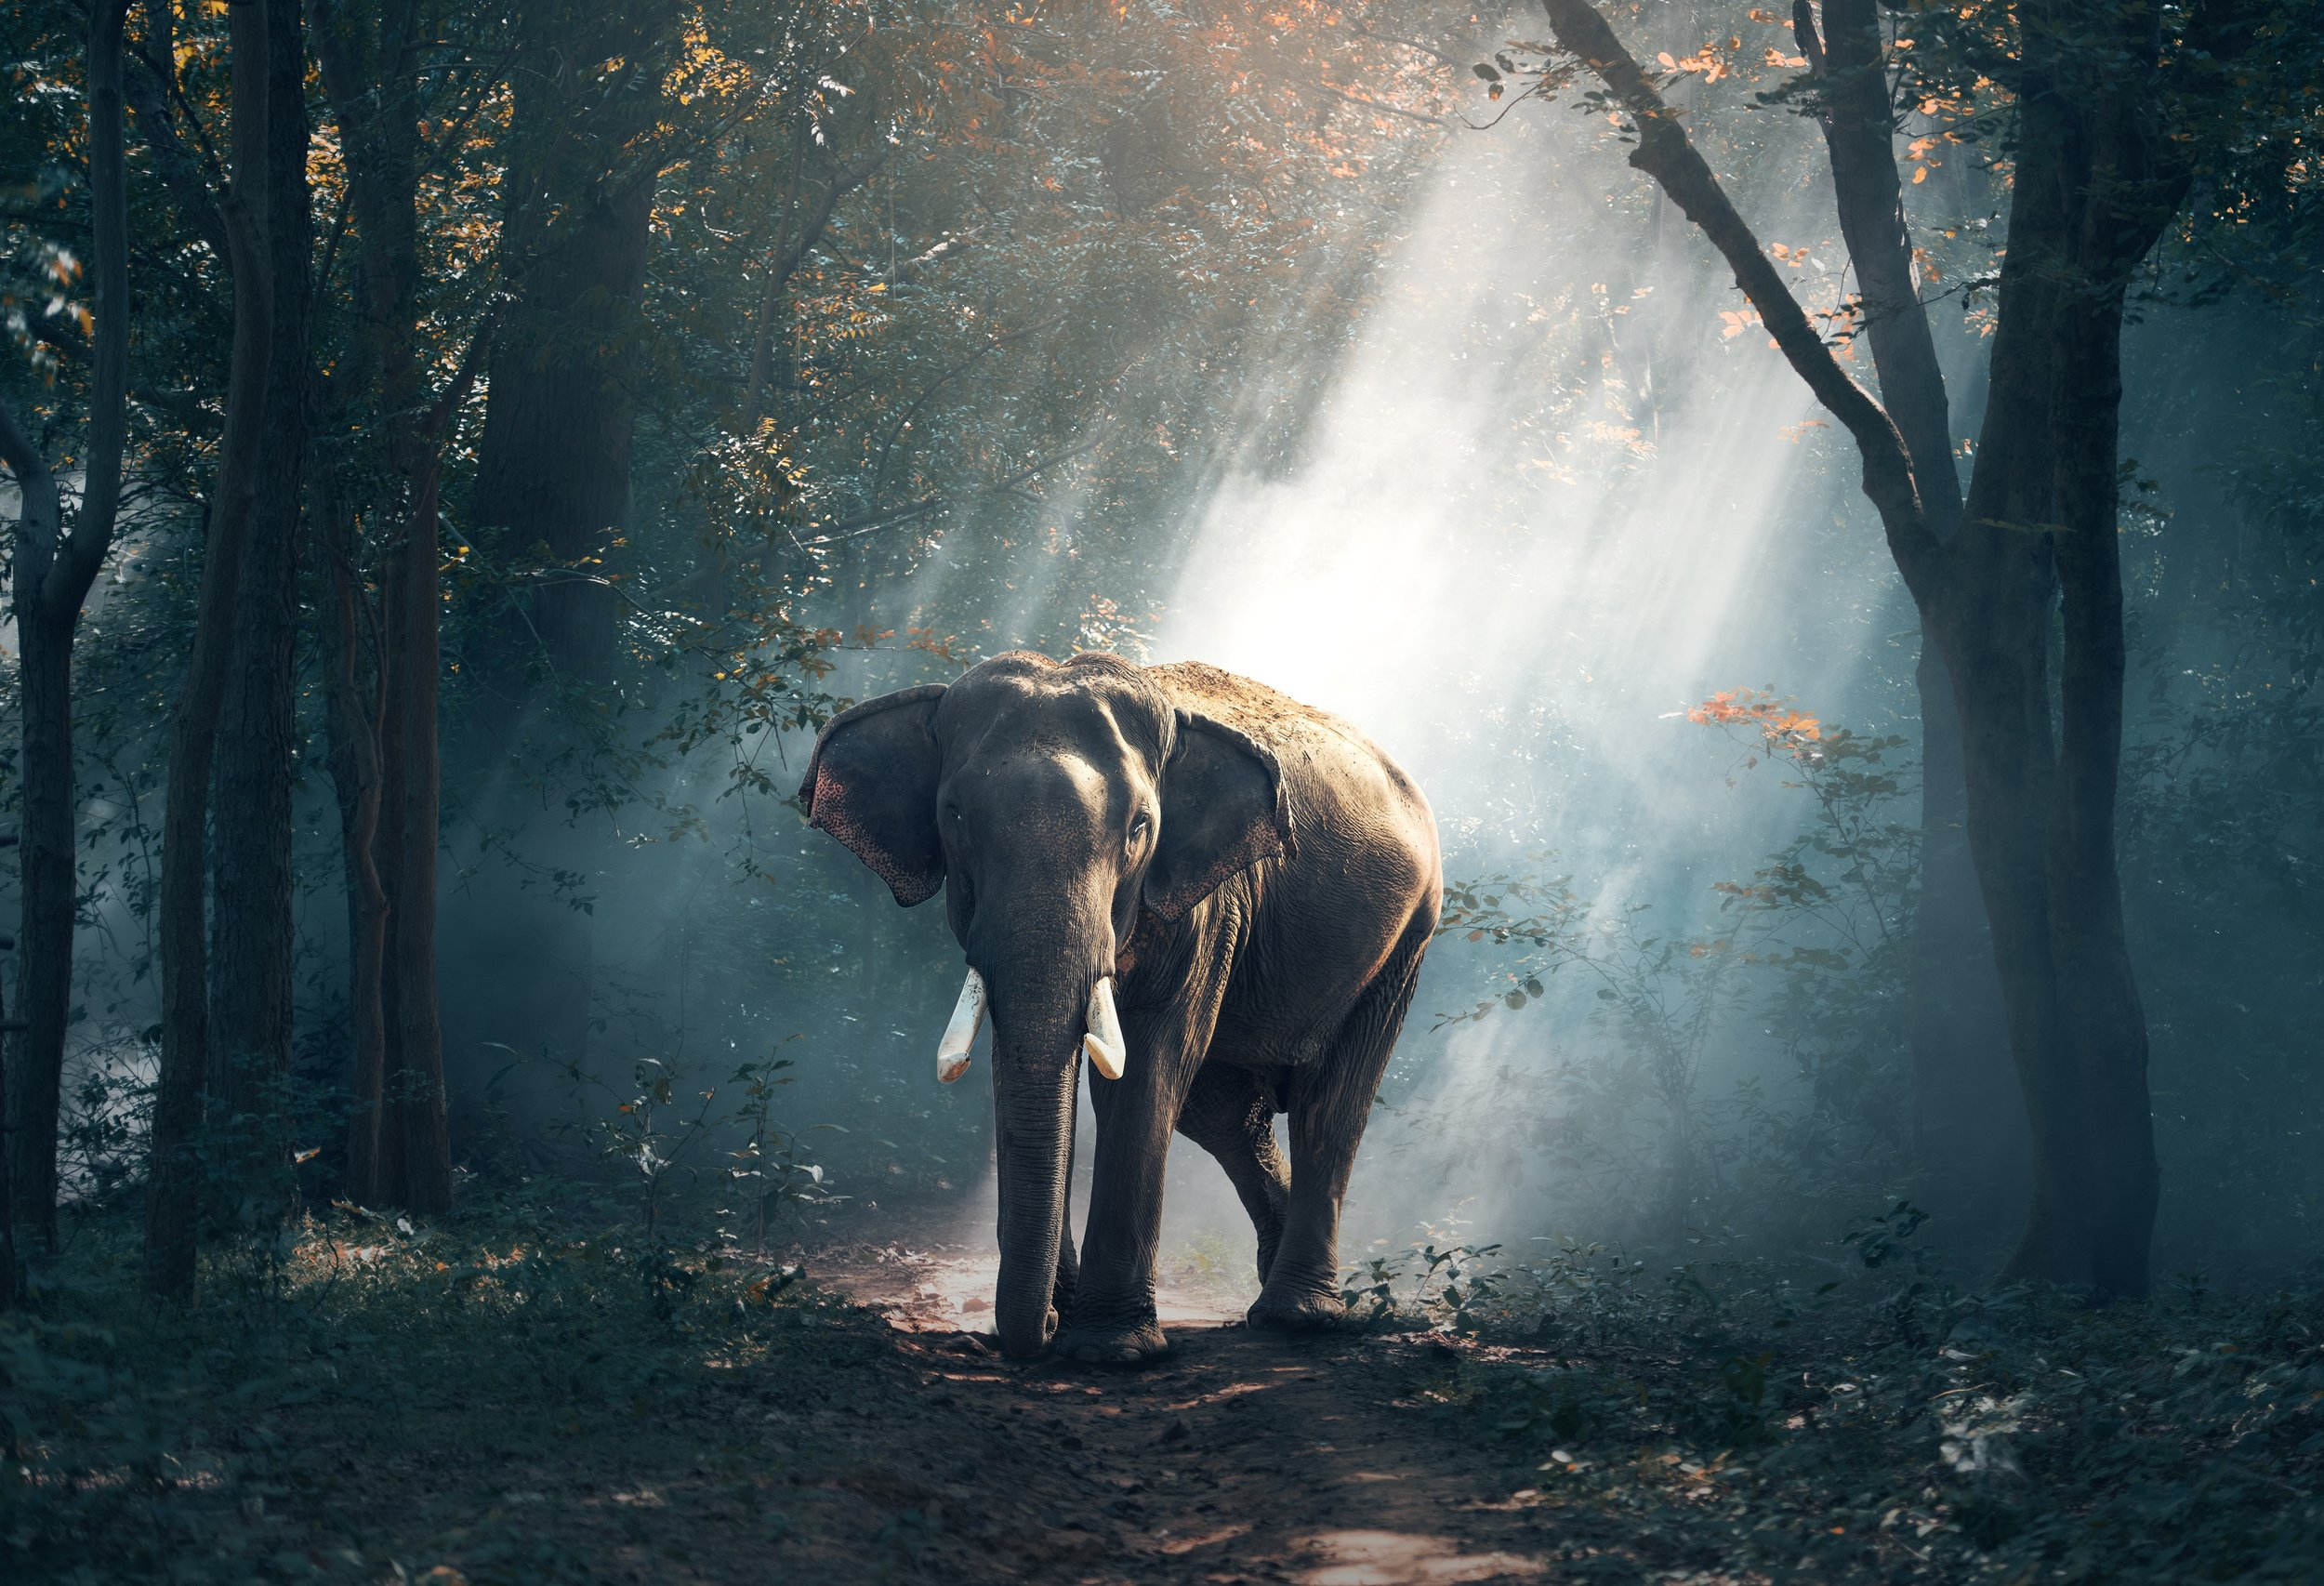 Elephants... - ...are known for their strength, connection to their family, empathy, playfulness, and the ability to not only communicate, but mourn.